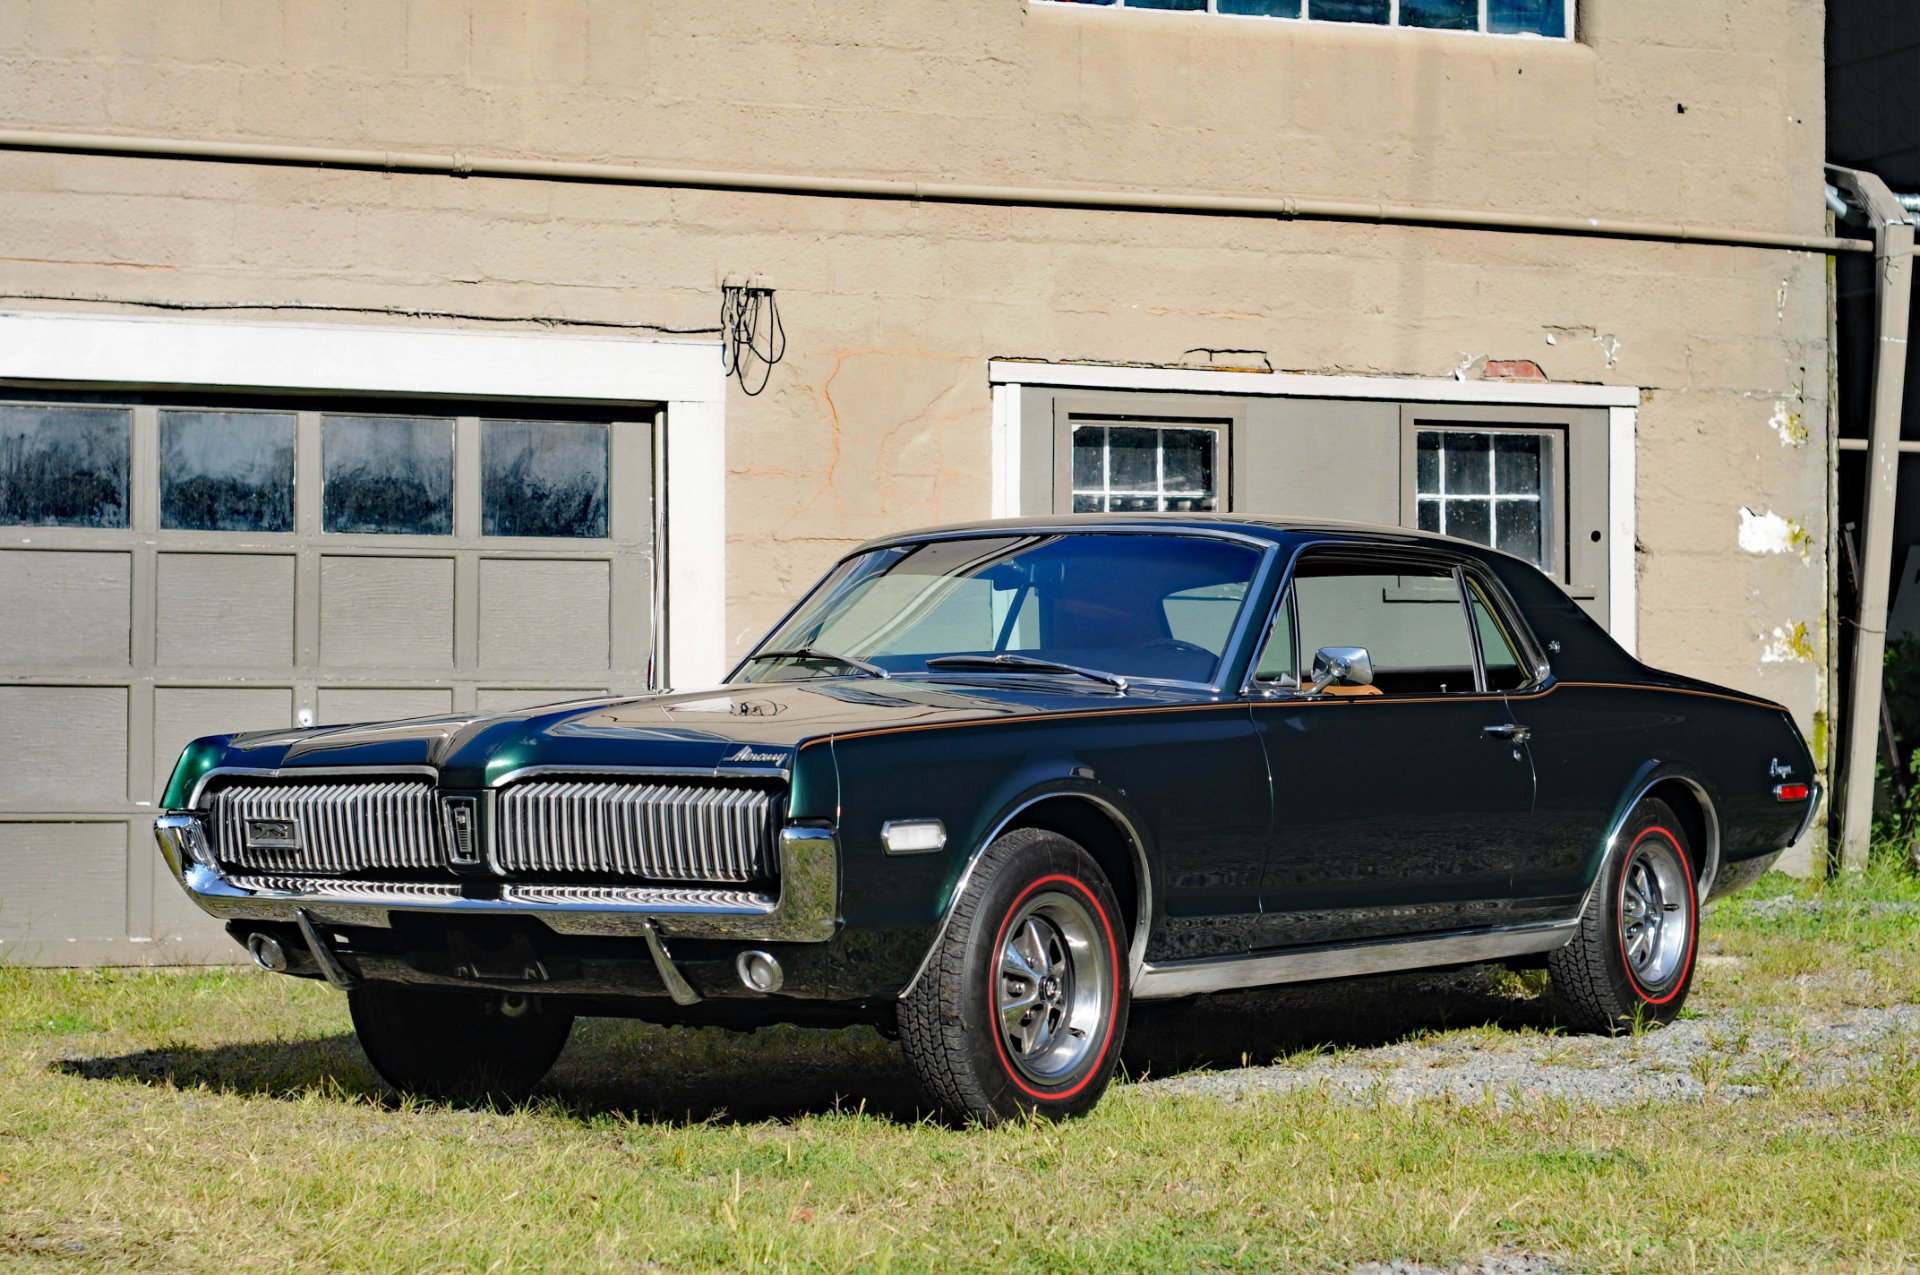 Used 1968 Mercury Cougar XR-7  | Peapack, NJ